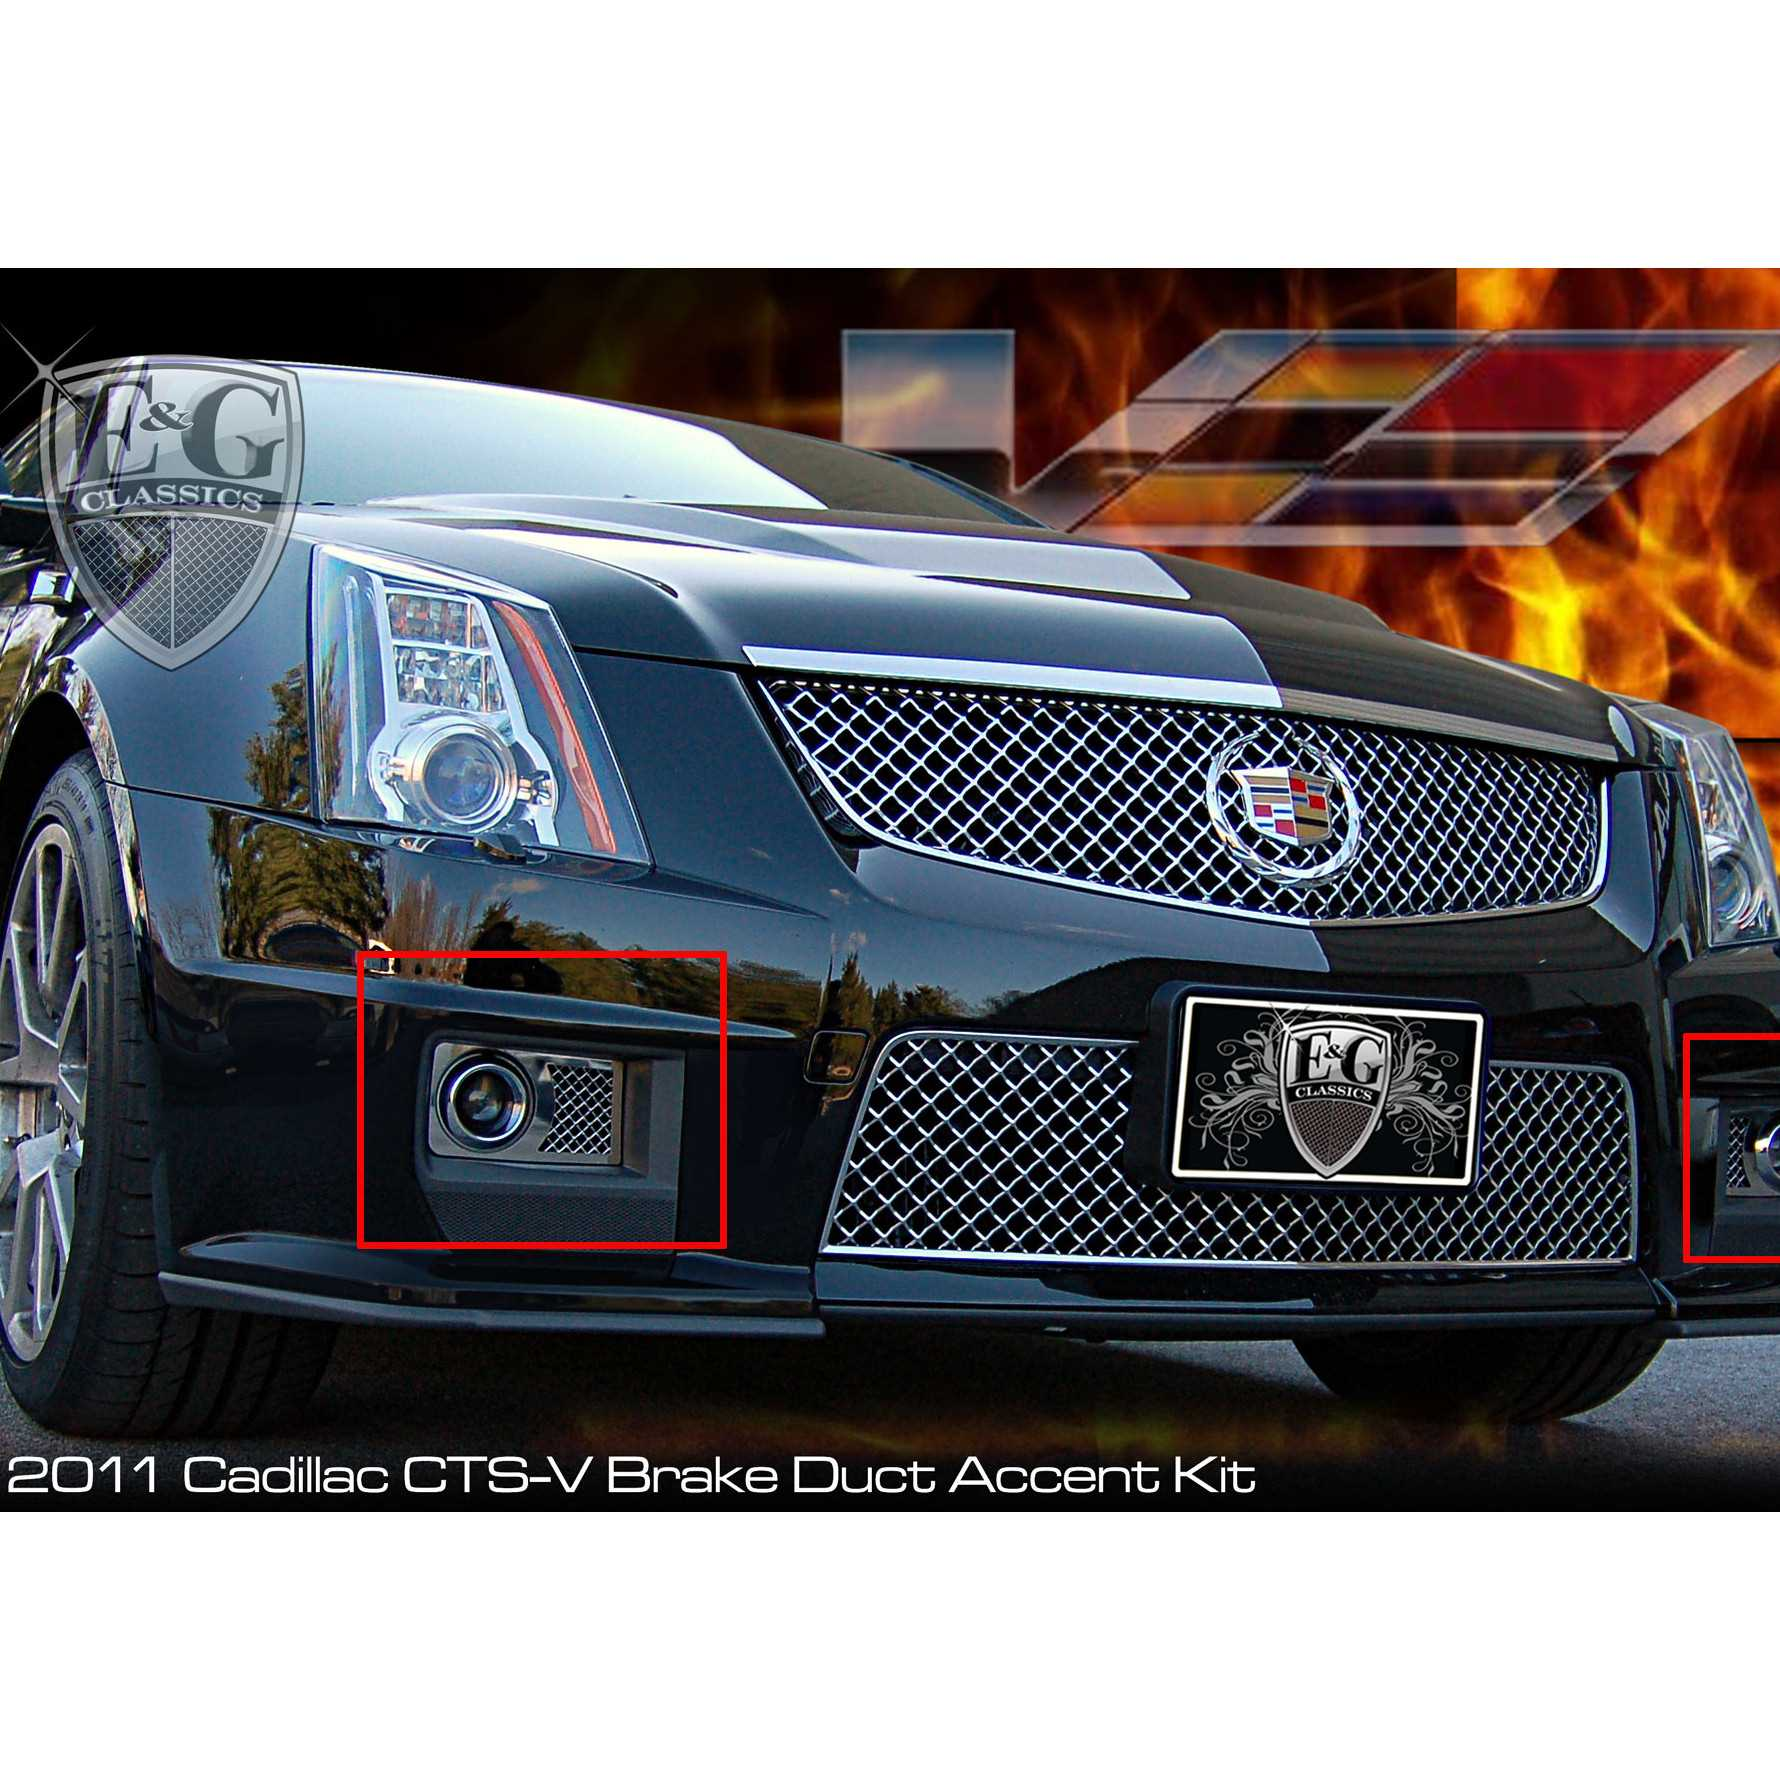 E g classics 2011 2013 cadillac cts accessories front brake duct covers 1416 010w 11